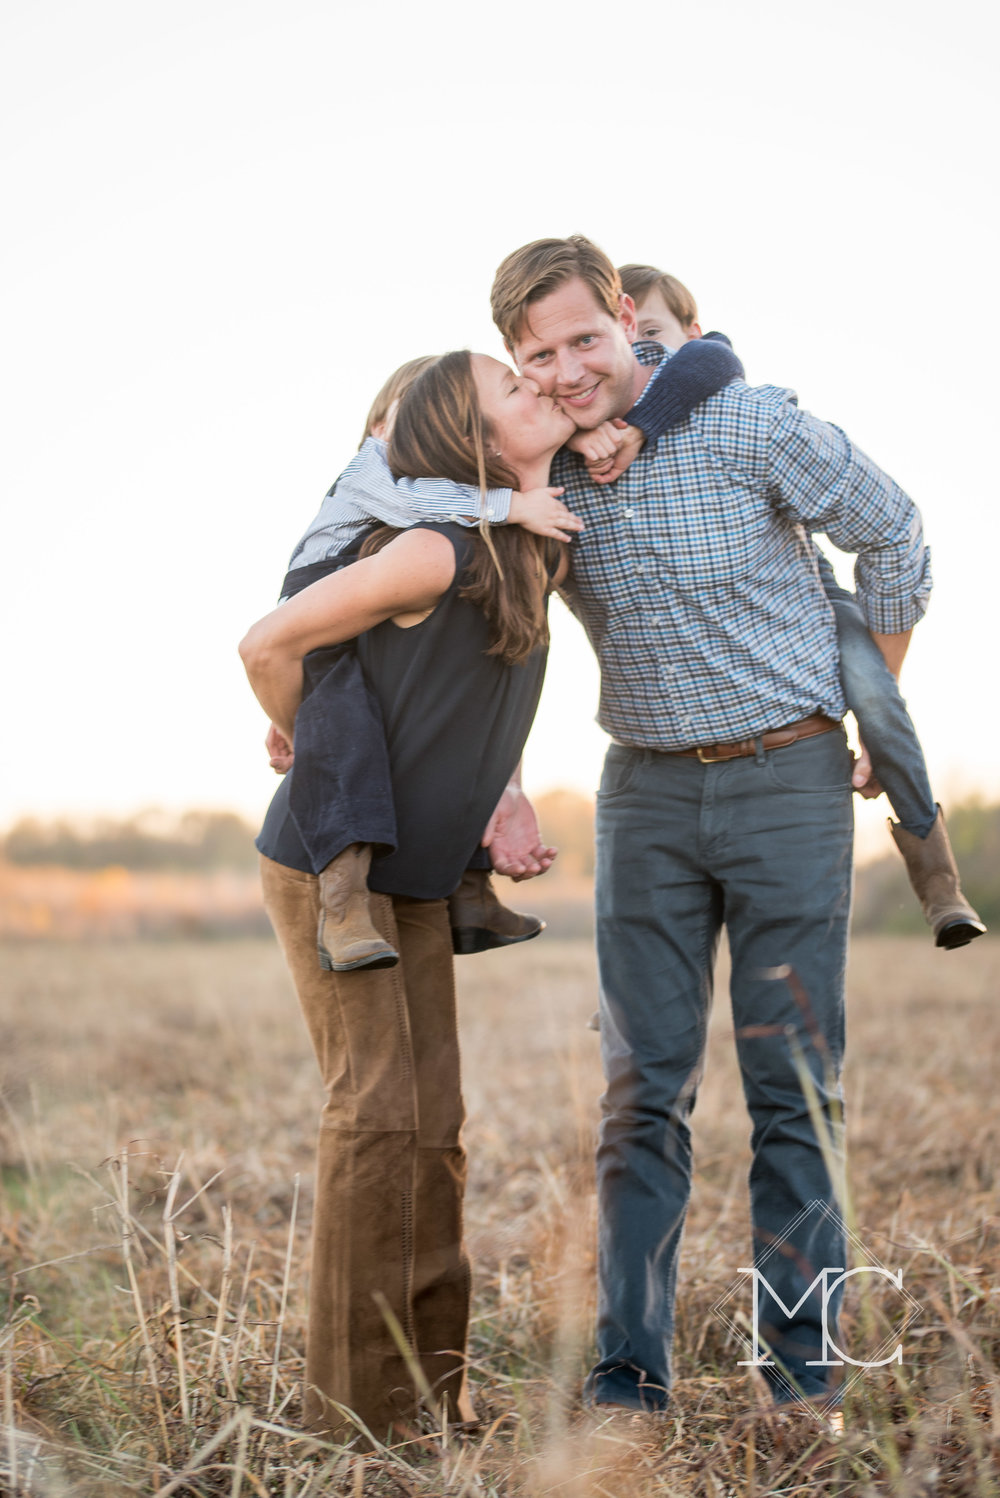 image from a fall family lifestyle session in nashville at airfield